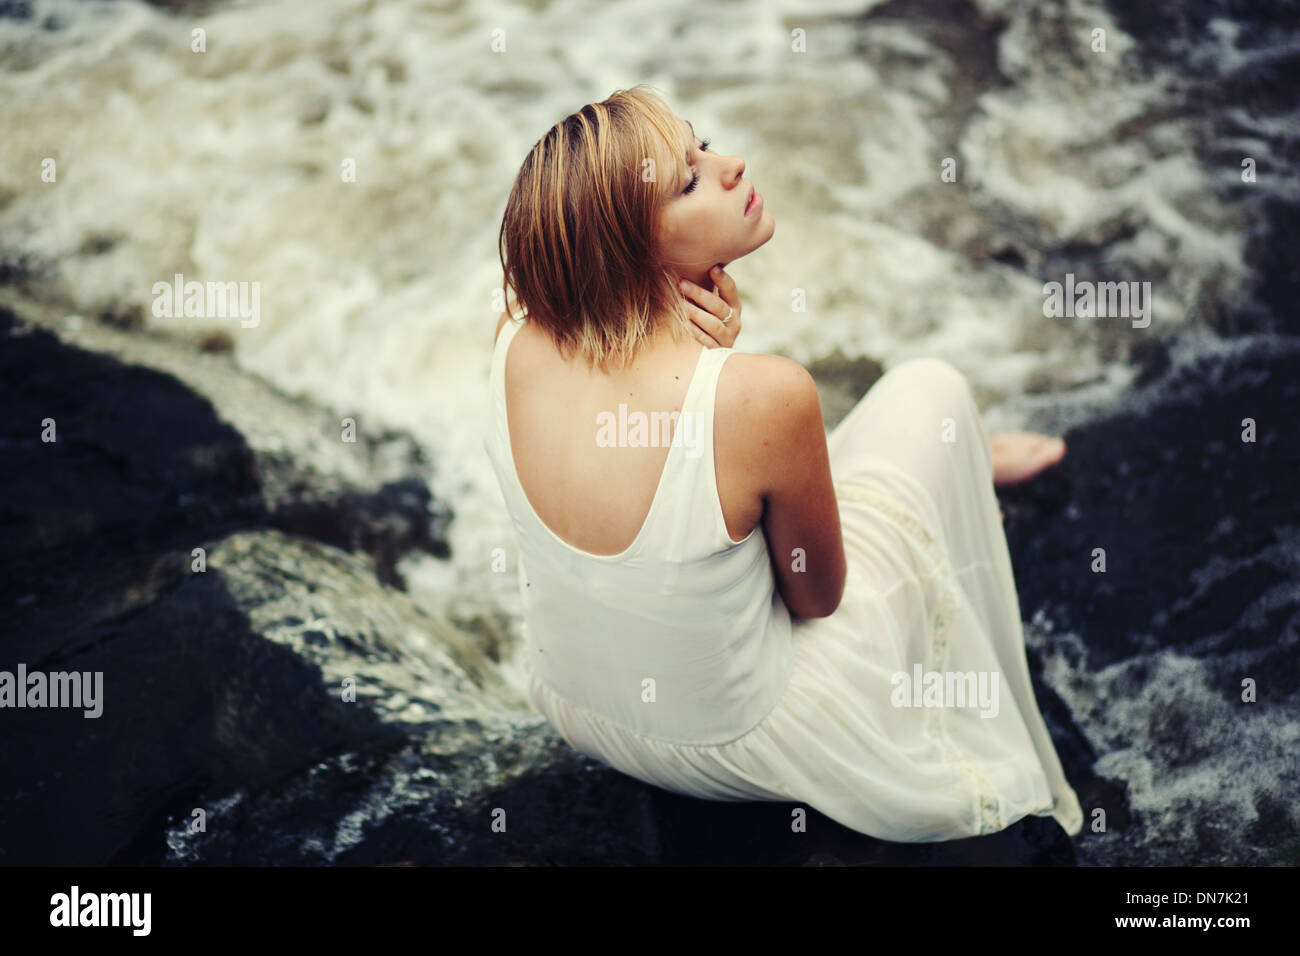 Jeune femme en robe blanche assise sur un creek Photo Stock